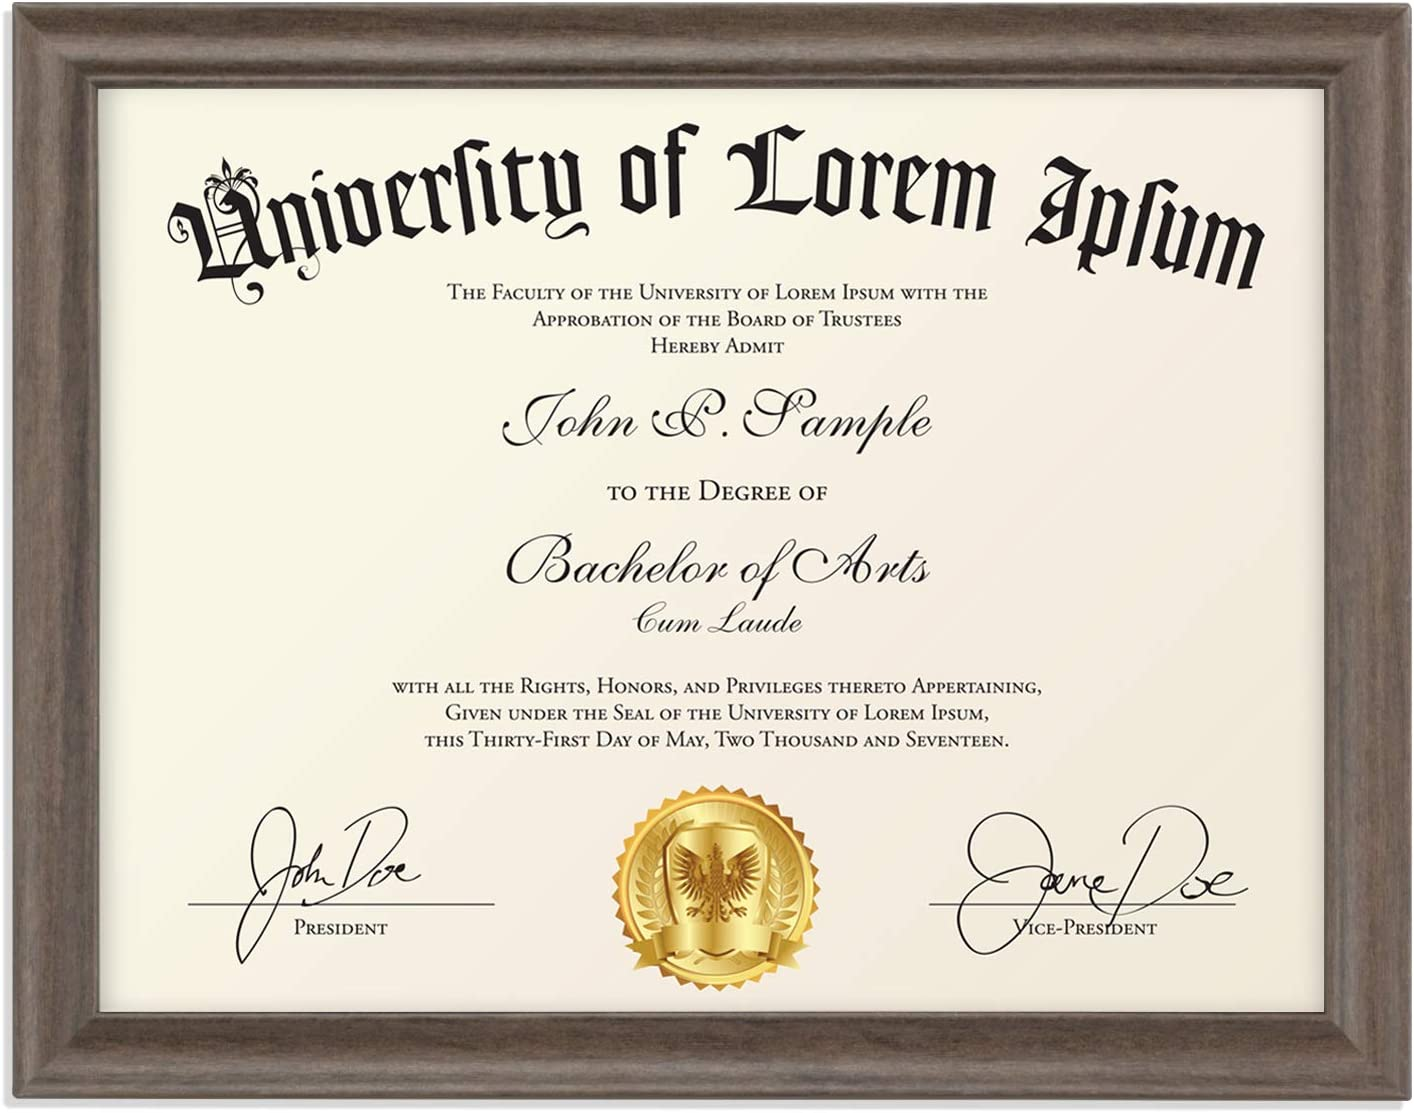 Icona Bay 8.5x11 (22x28 cm) Hickory Brown Certificate Frame, Contemporary Diploma Frame, Composite Wood Document Frame for Walls or Table Top, Lakeland Collection